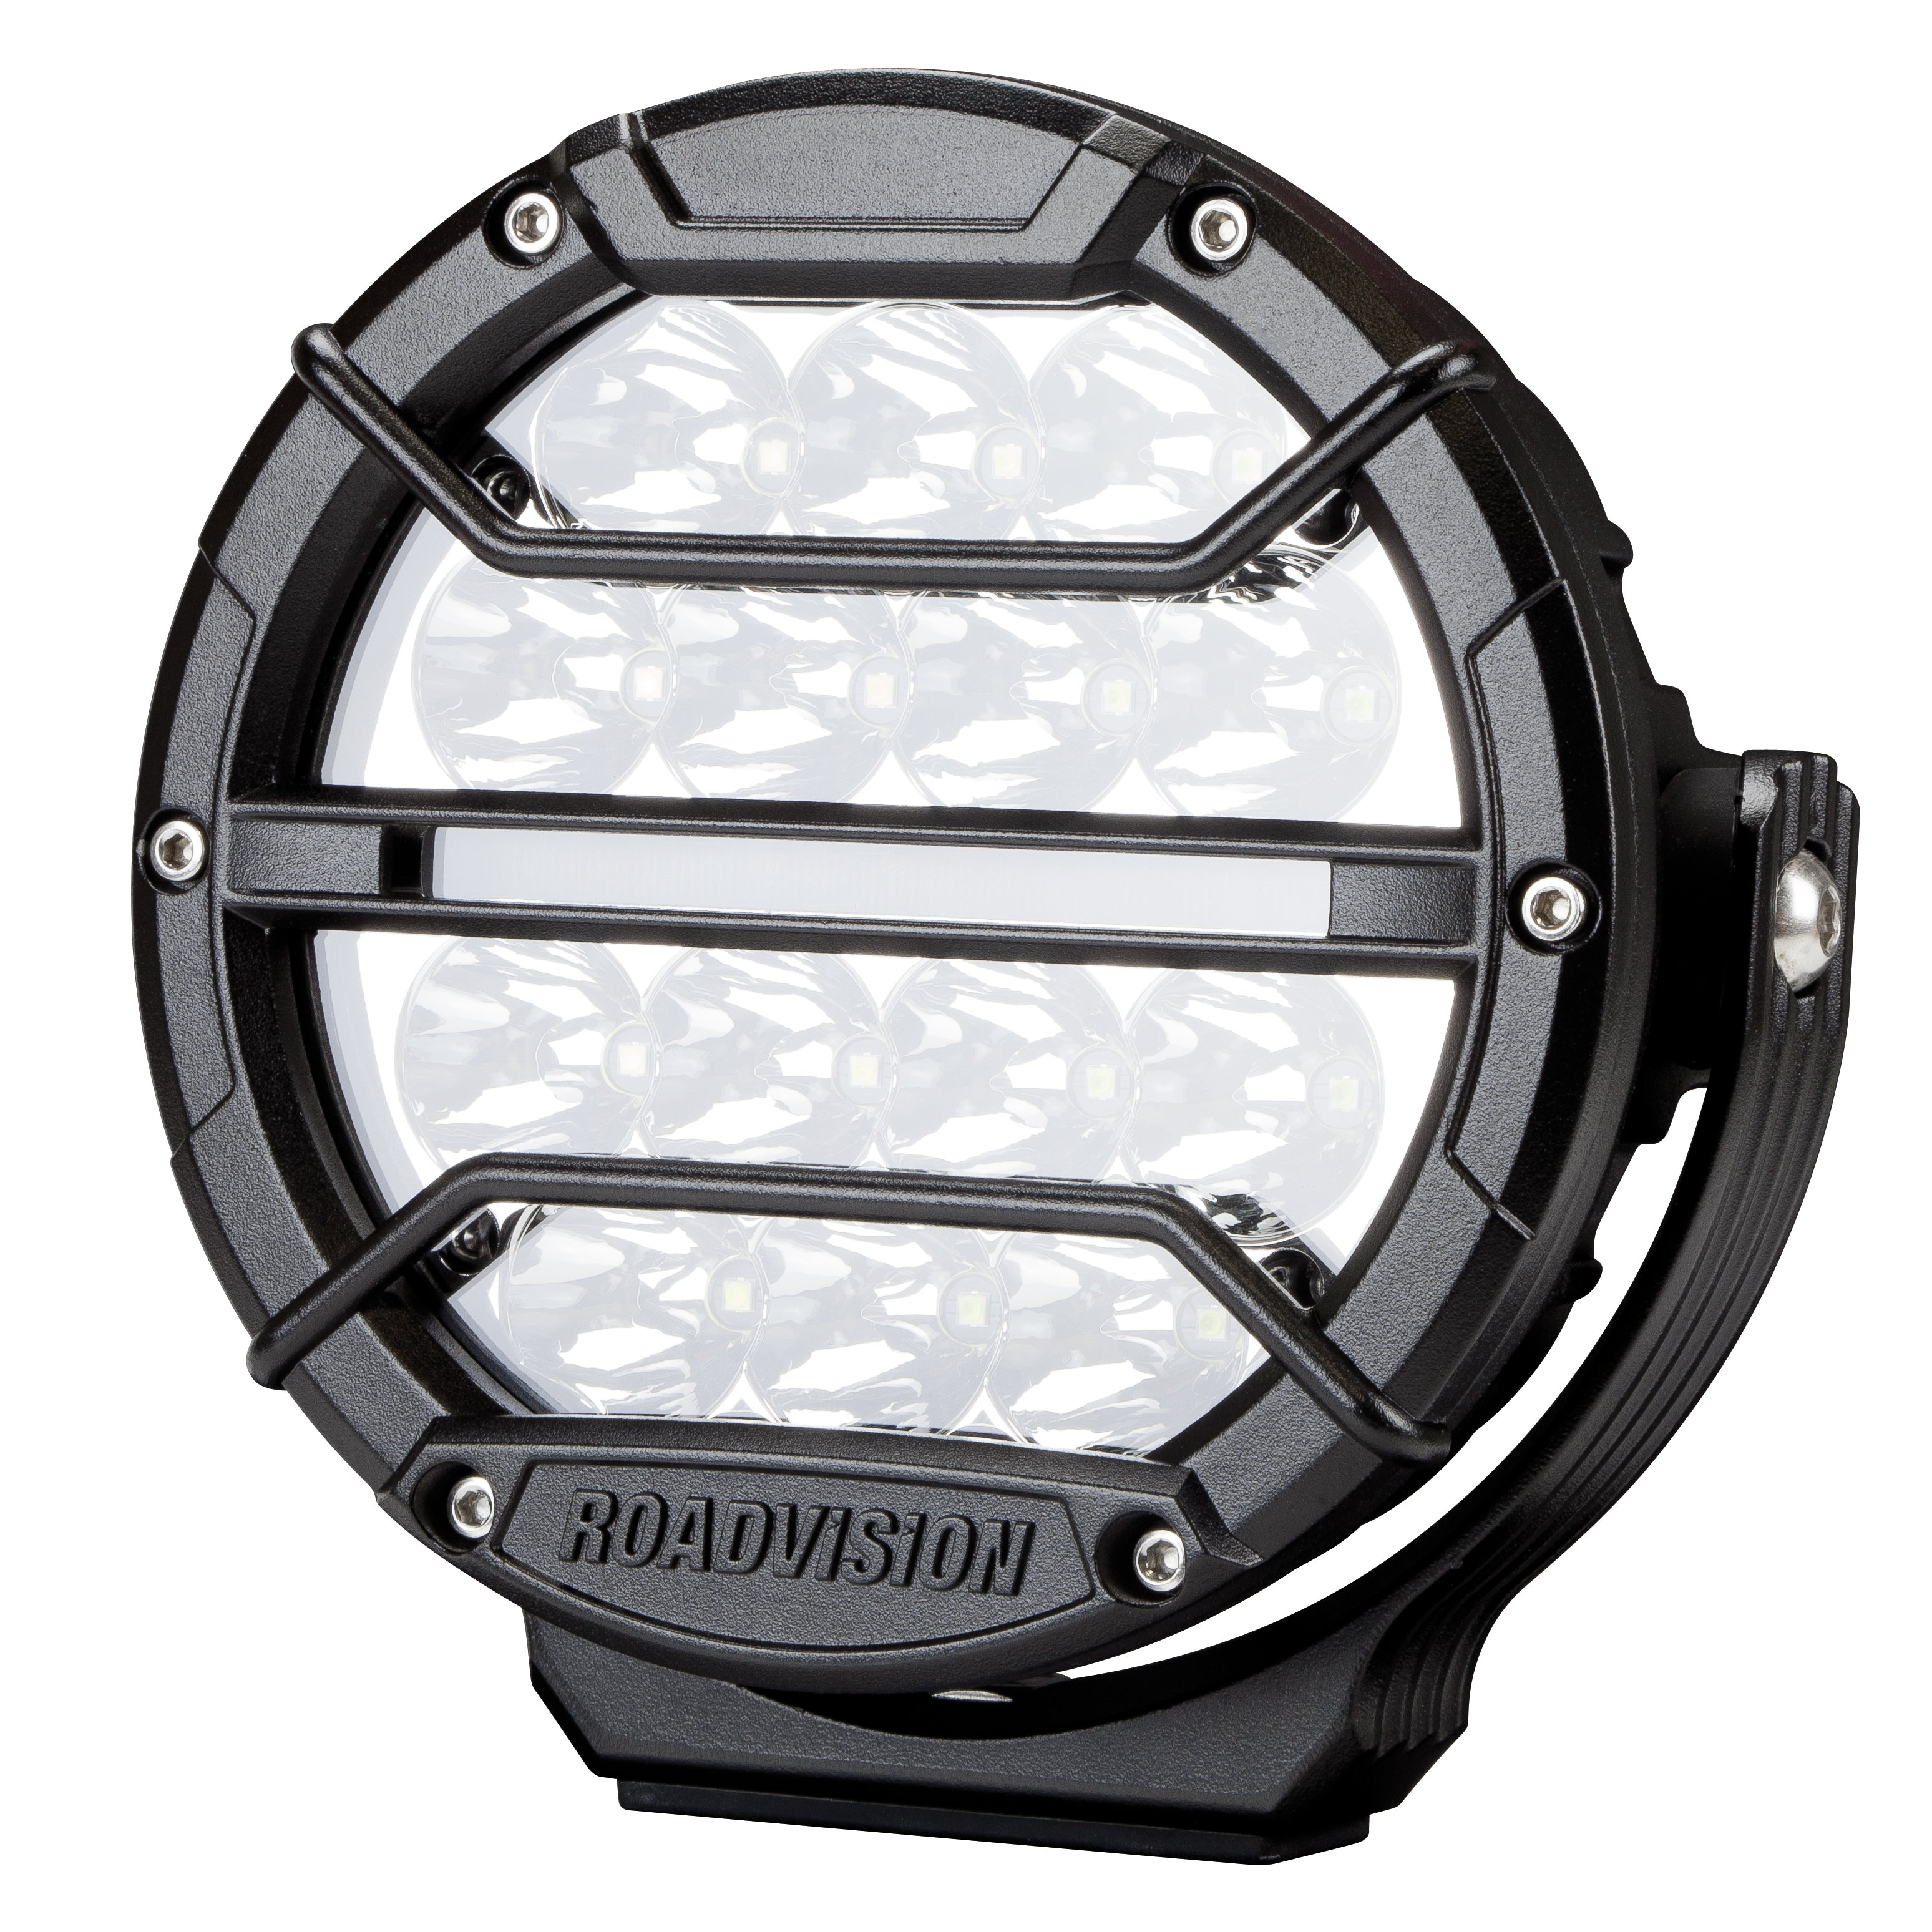 Roadvision Dominator DL SERIES Driving Lights